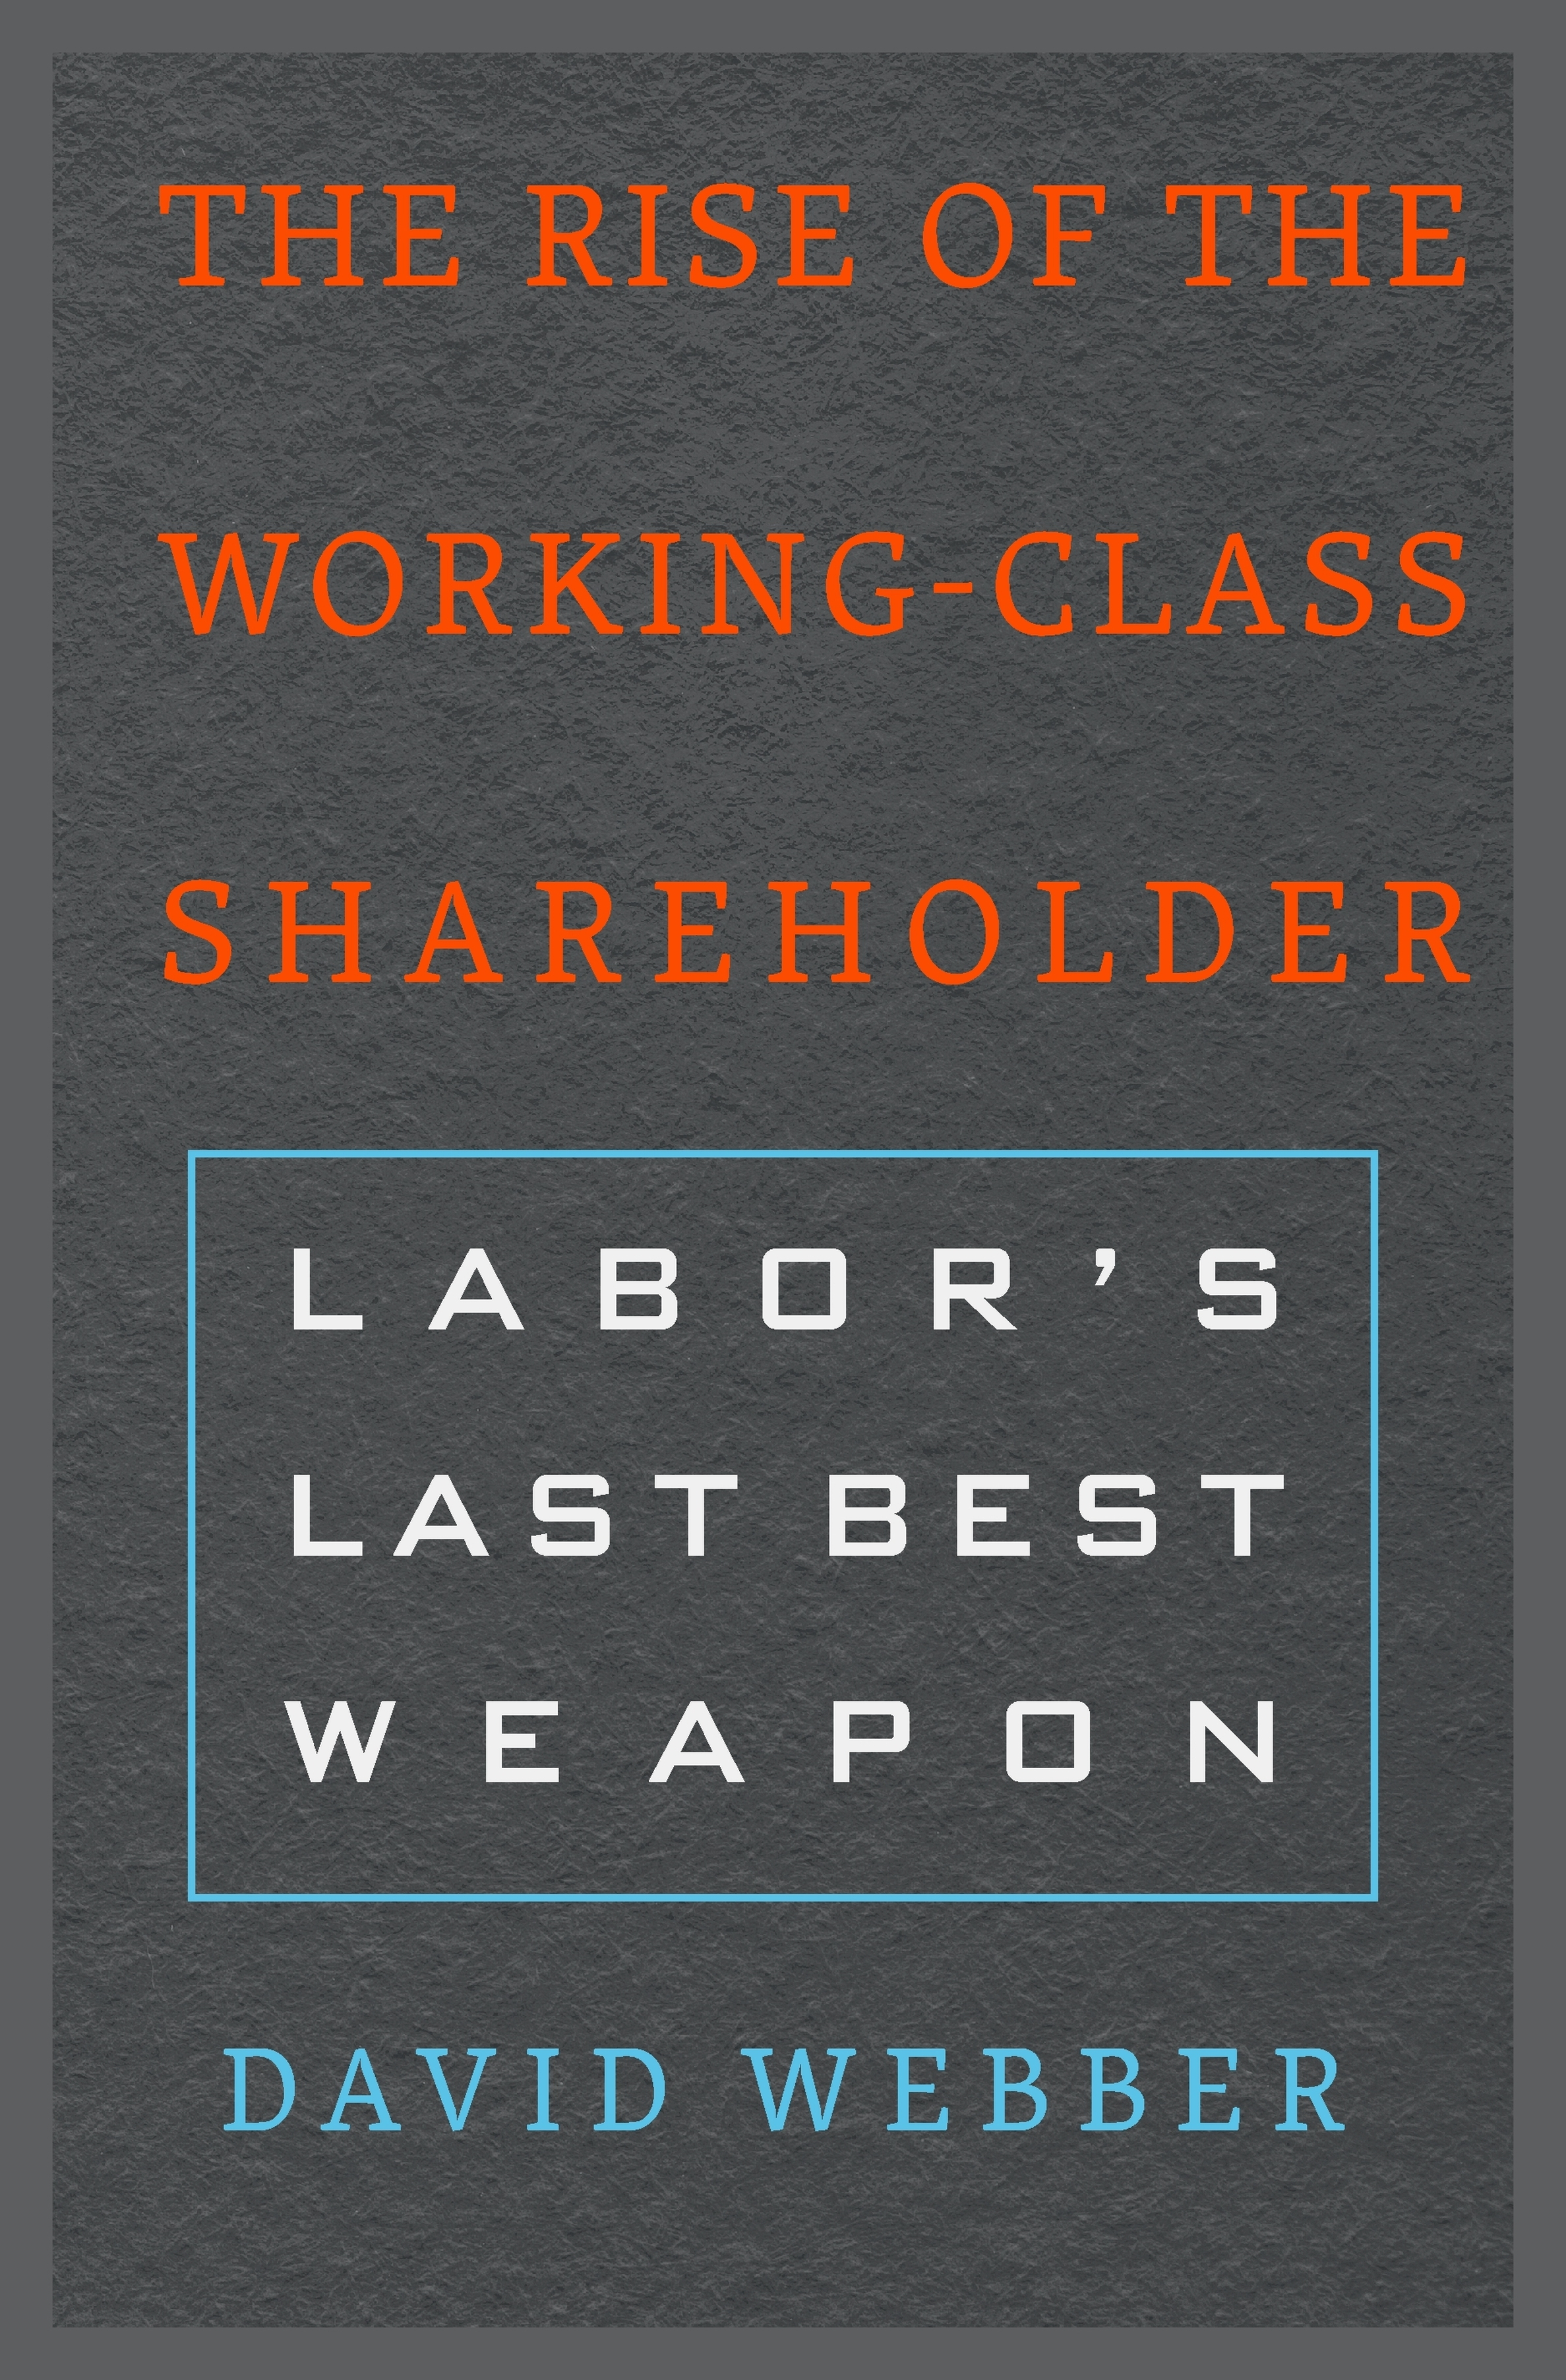 The Rise of the Working-Class Shareholder book cover.jpg